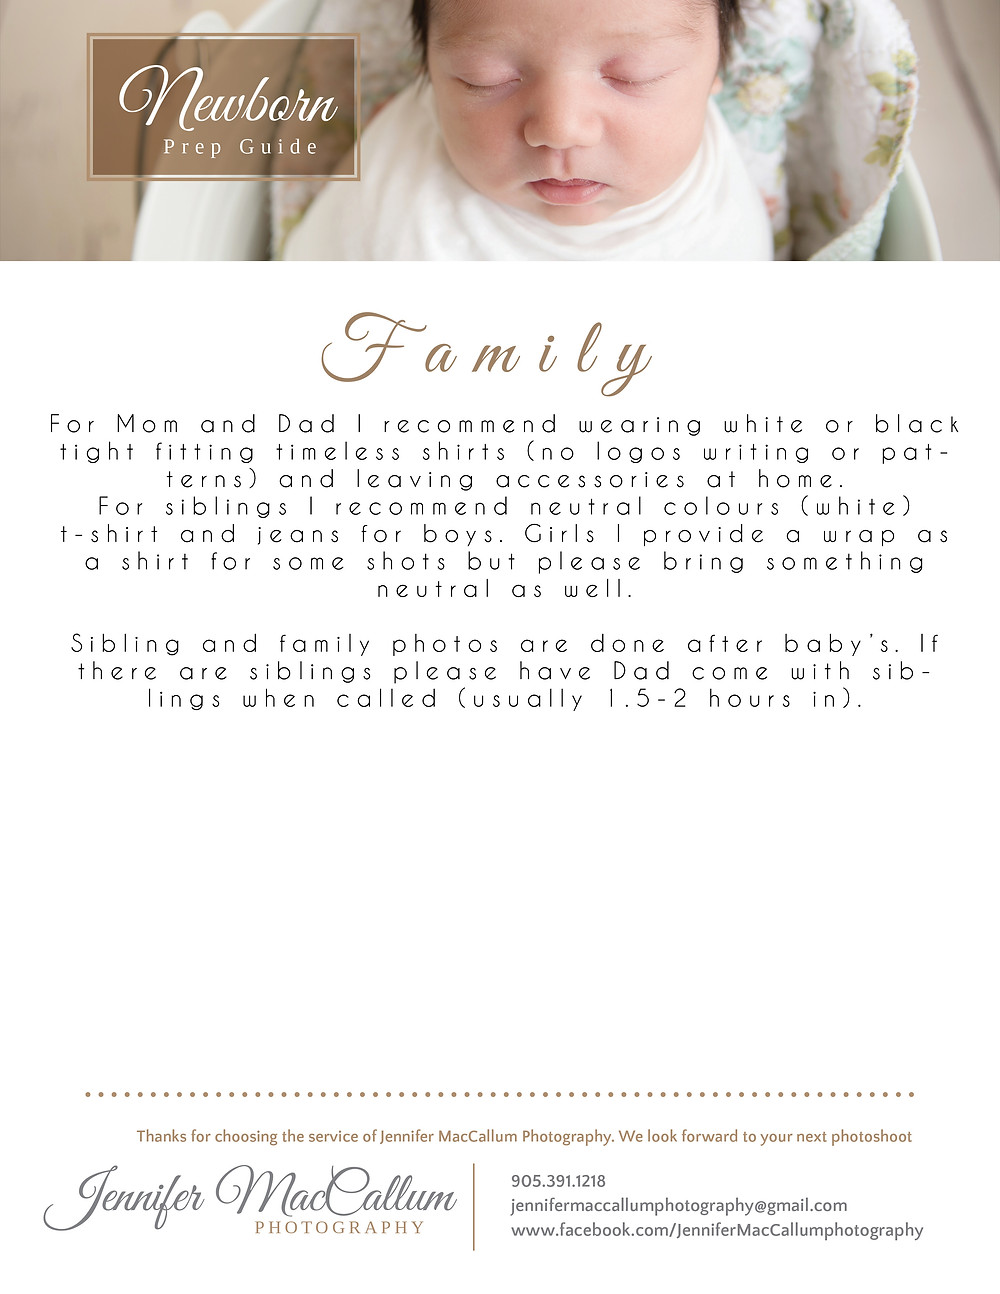 Prep guide for families for their newborn photography session